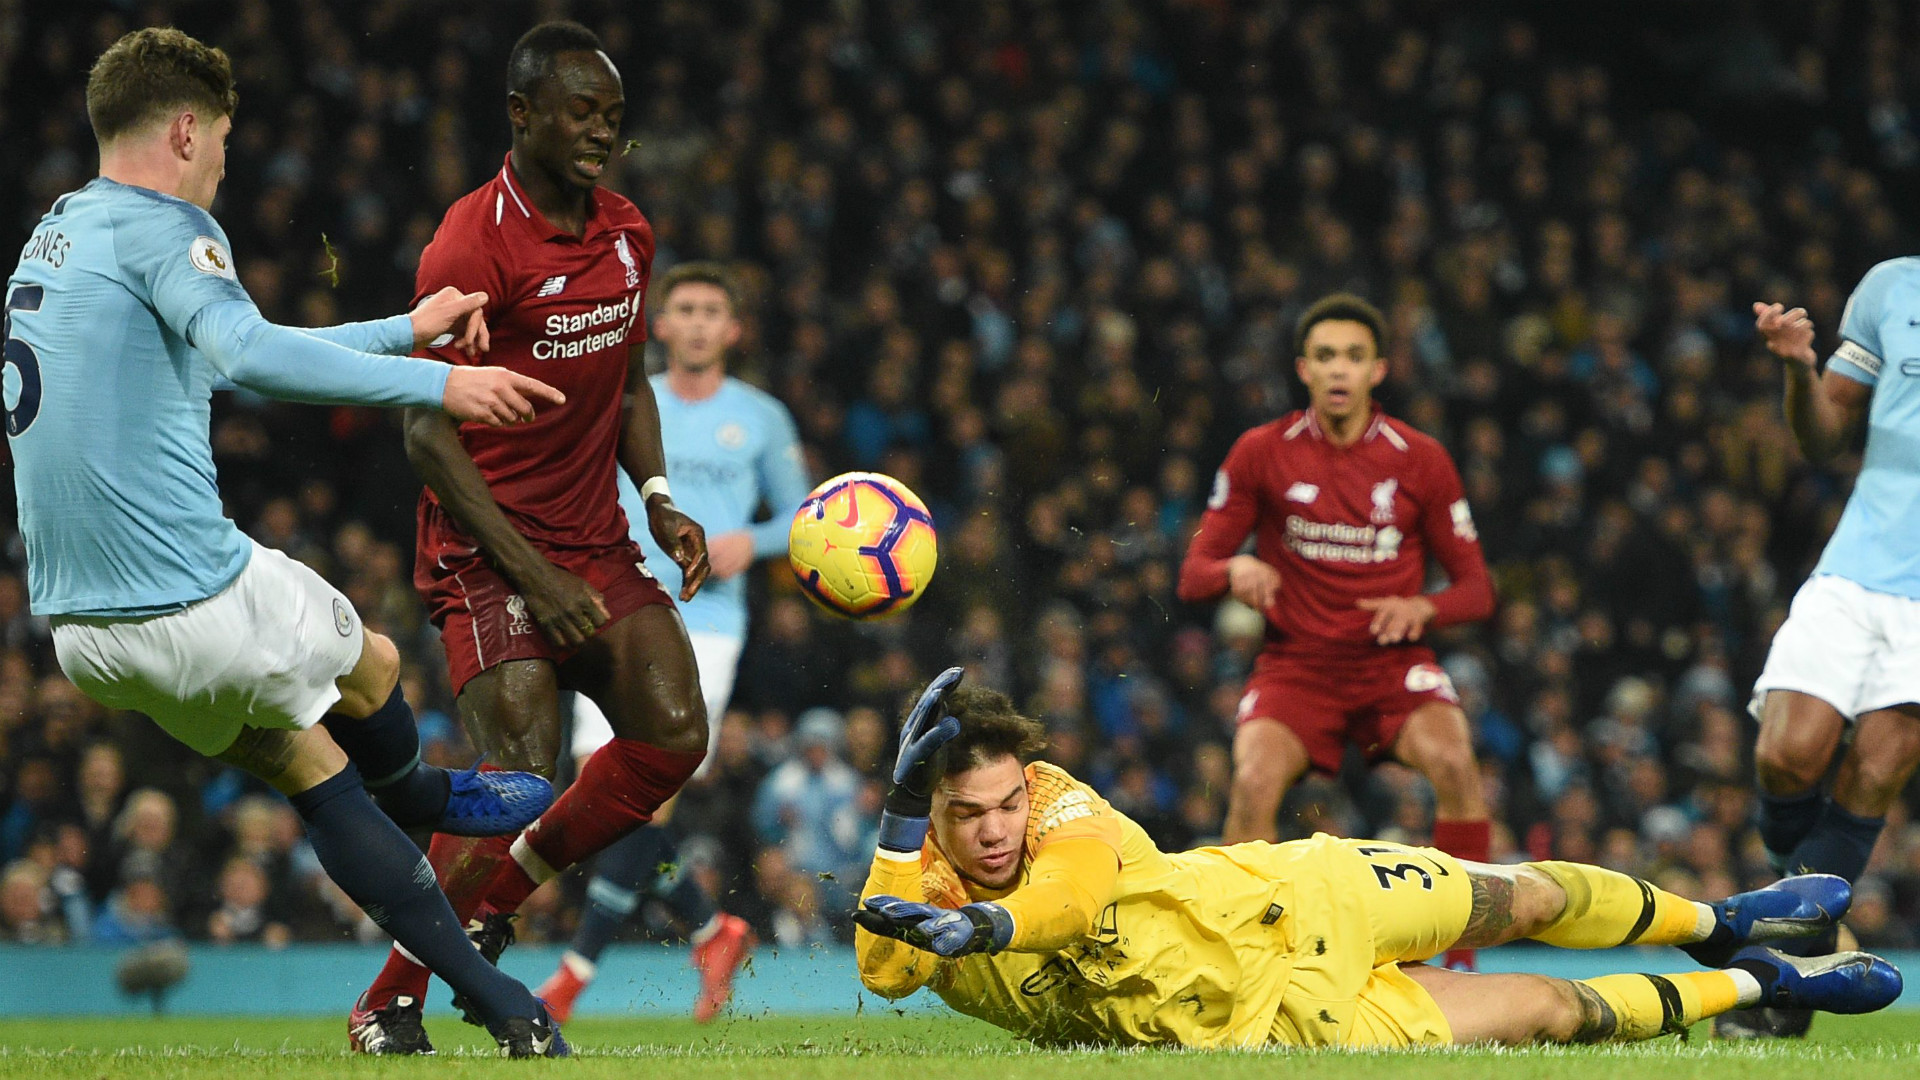 SADIO MANE LIVERPOOL EDERSON MANCHESTER CITY PREMIER LEAGUE 03012019